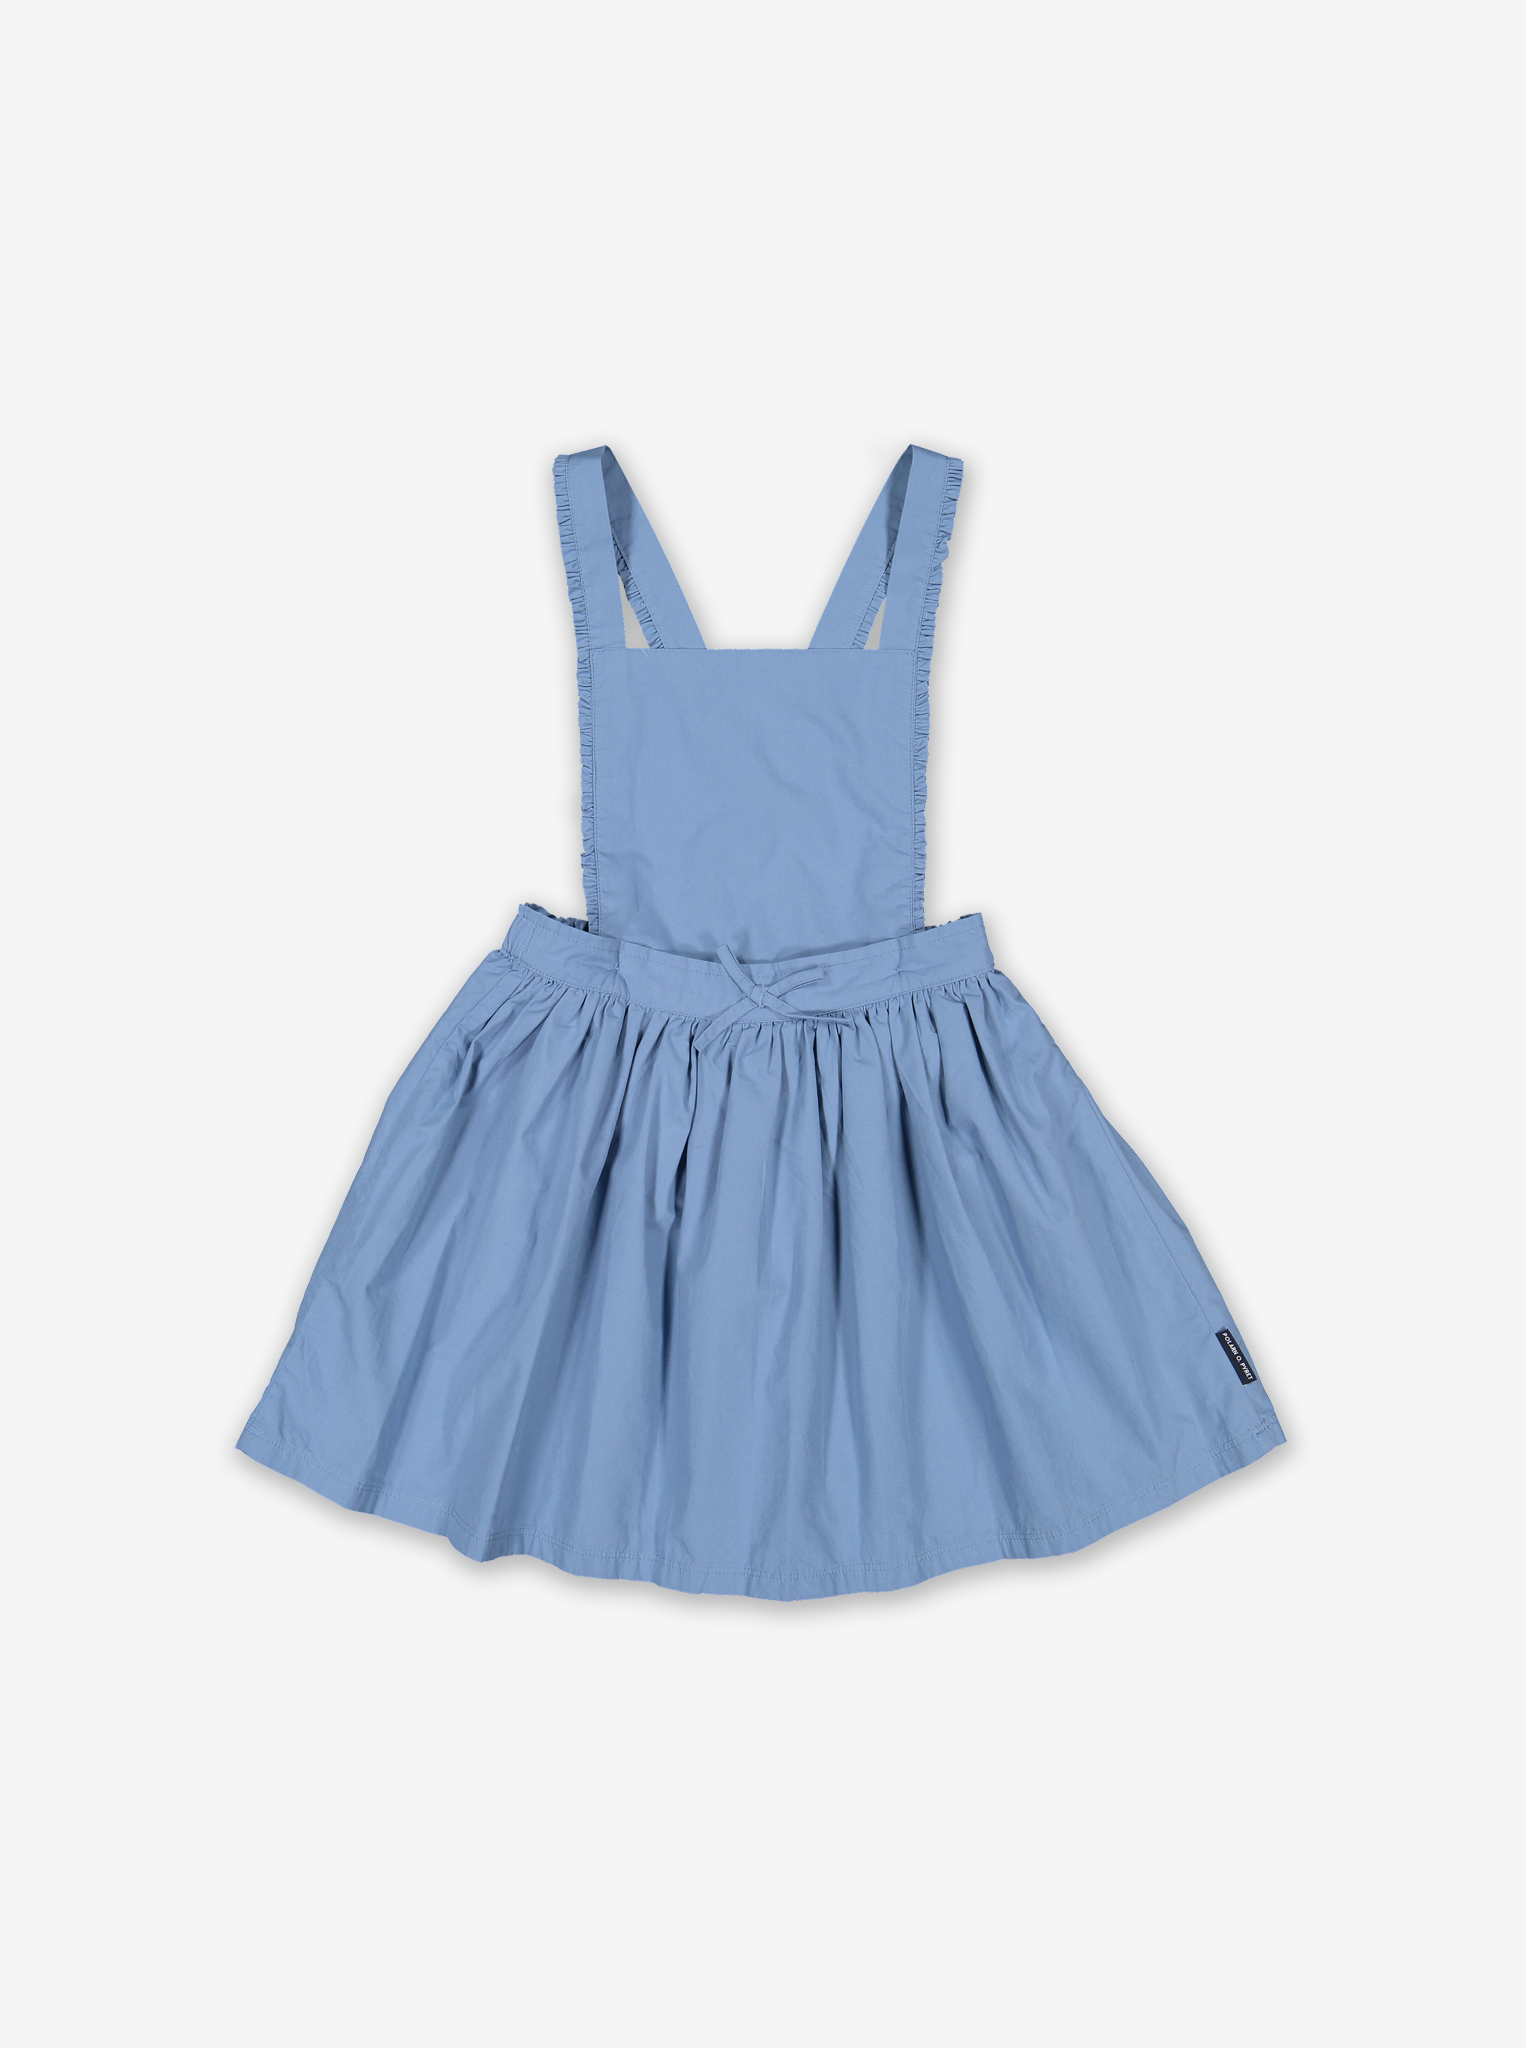 Kids Skirt With Braces-Girl-1-6y-Blue